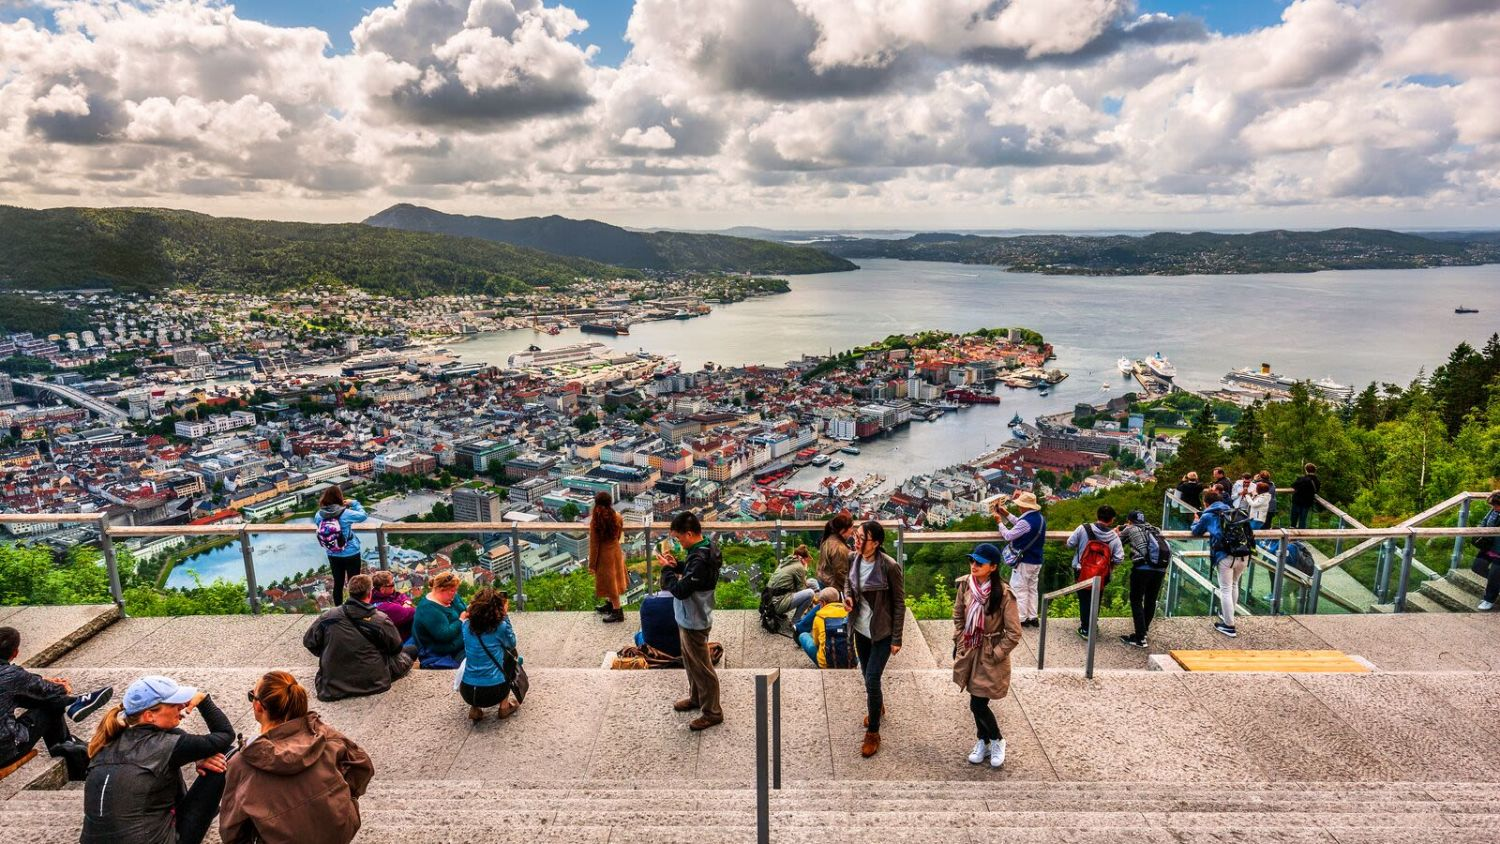 View from the mountain Fløyen above Bergen. Photo: Giovanni Tagini, Visit Norway